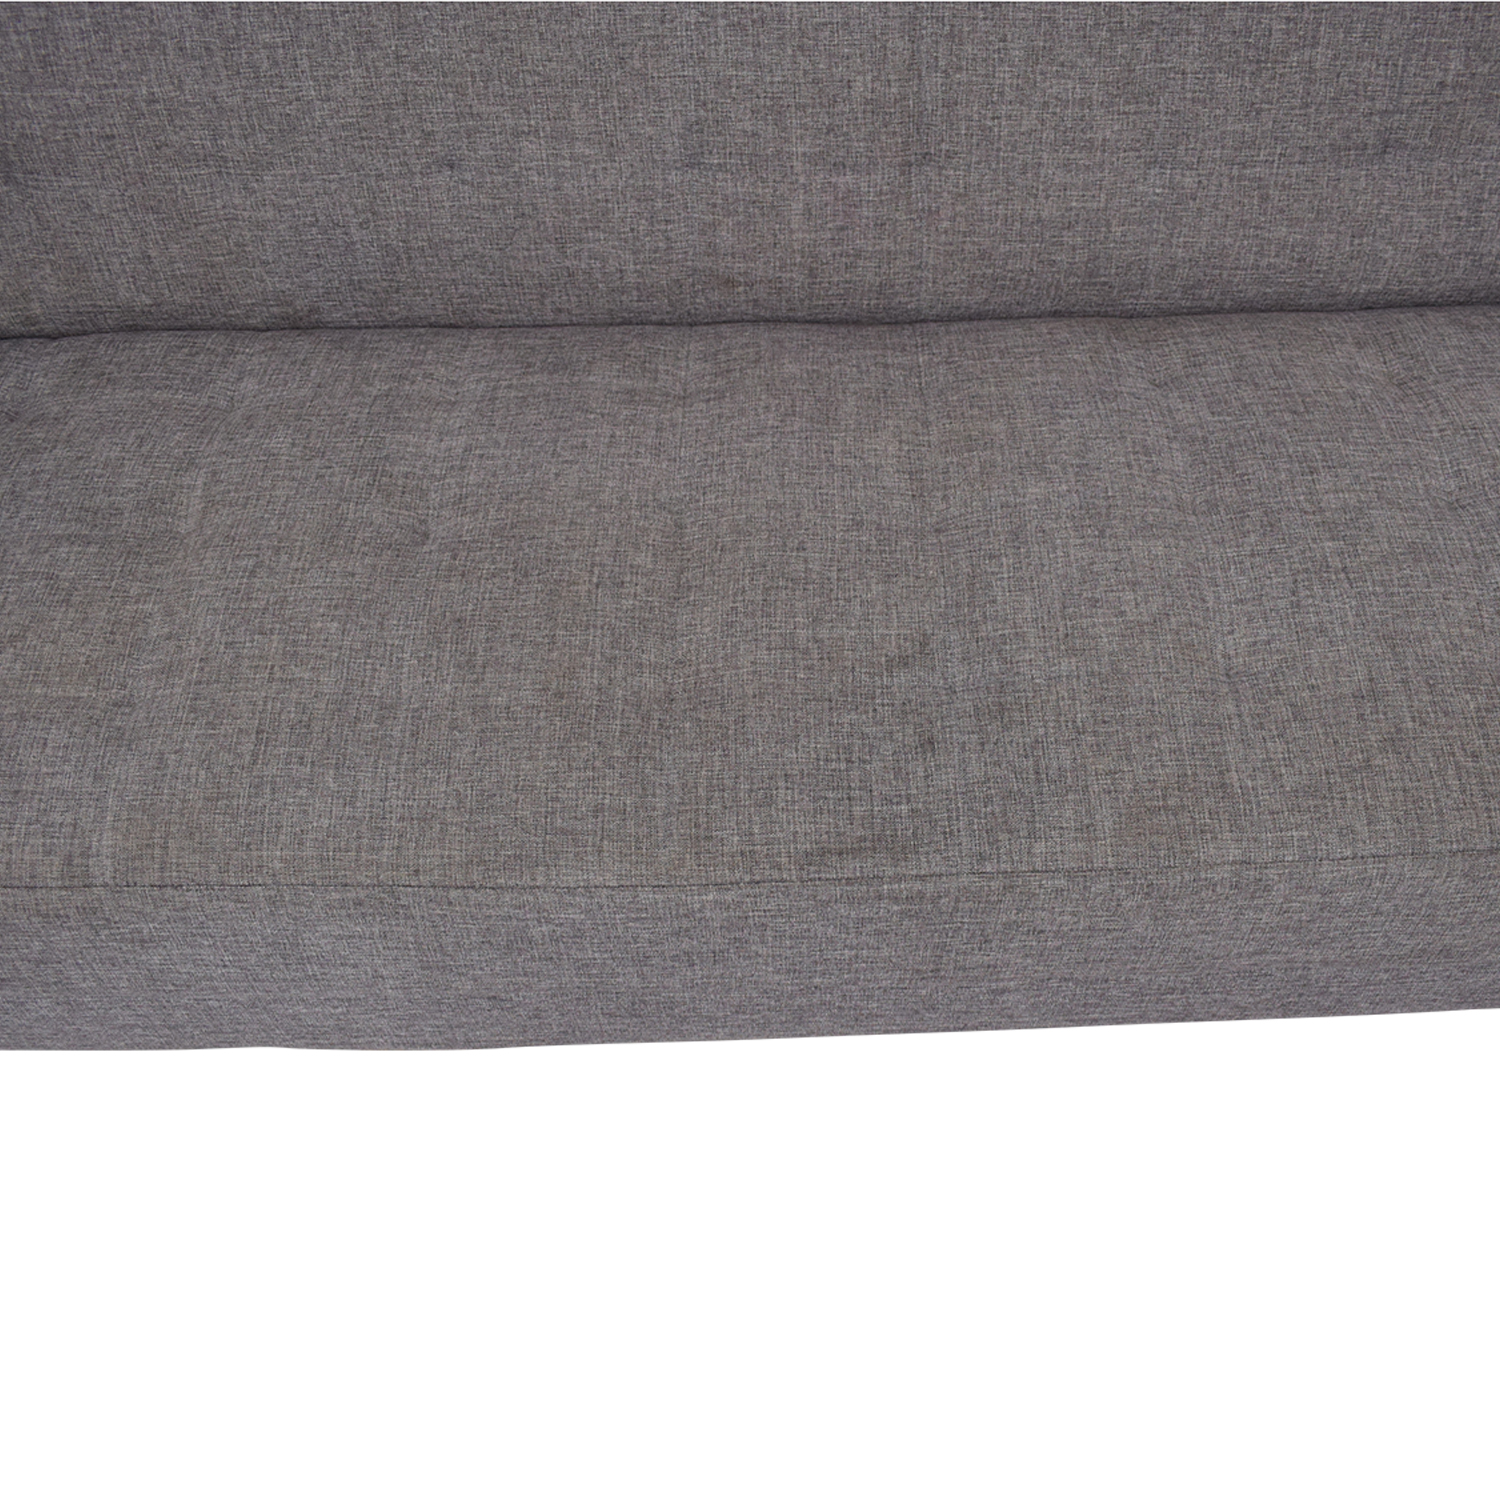 Gold Sparrow Frankfort Convertible Sectional Sofa Bed second hand